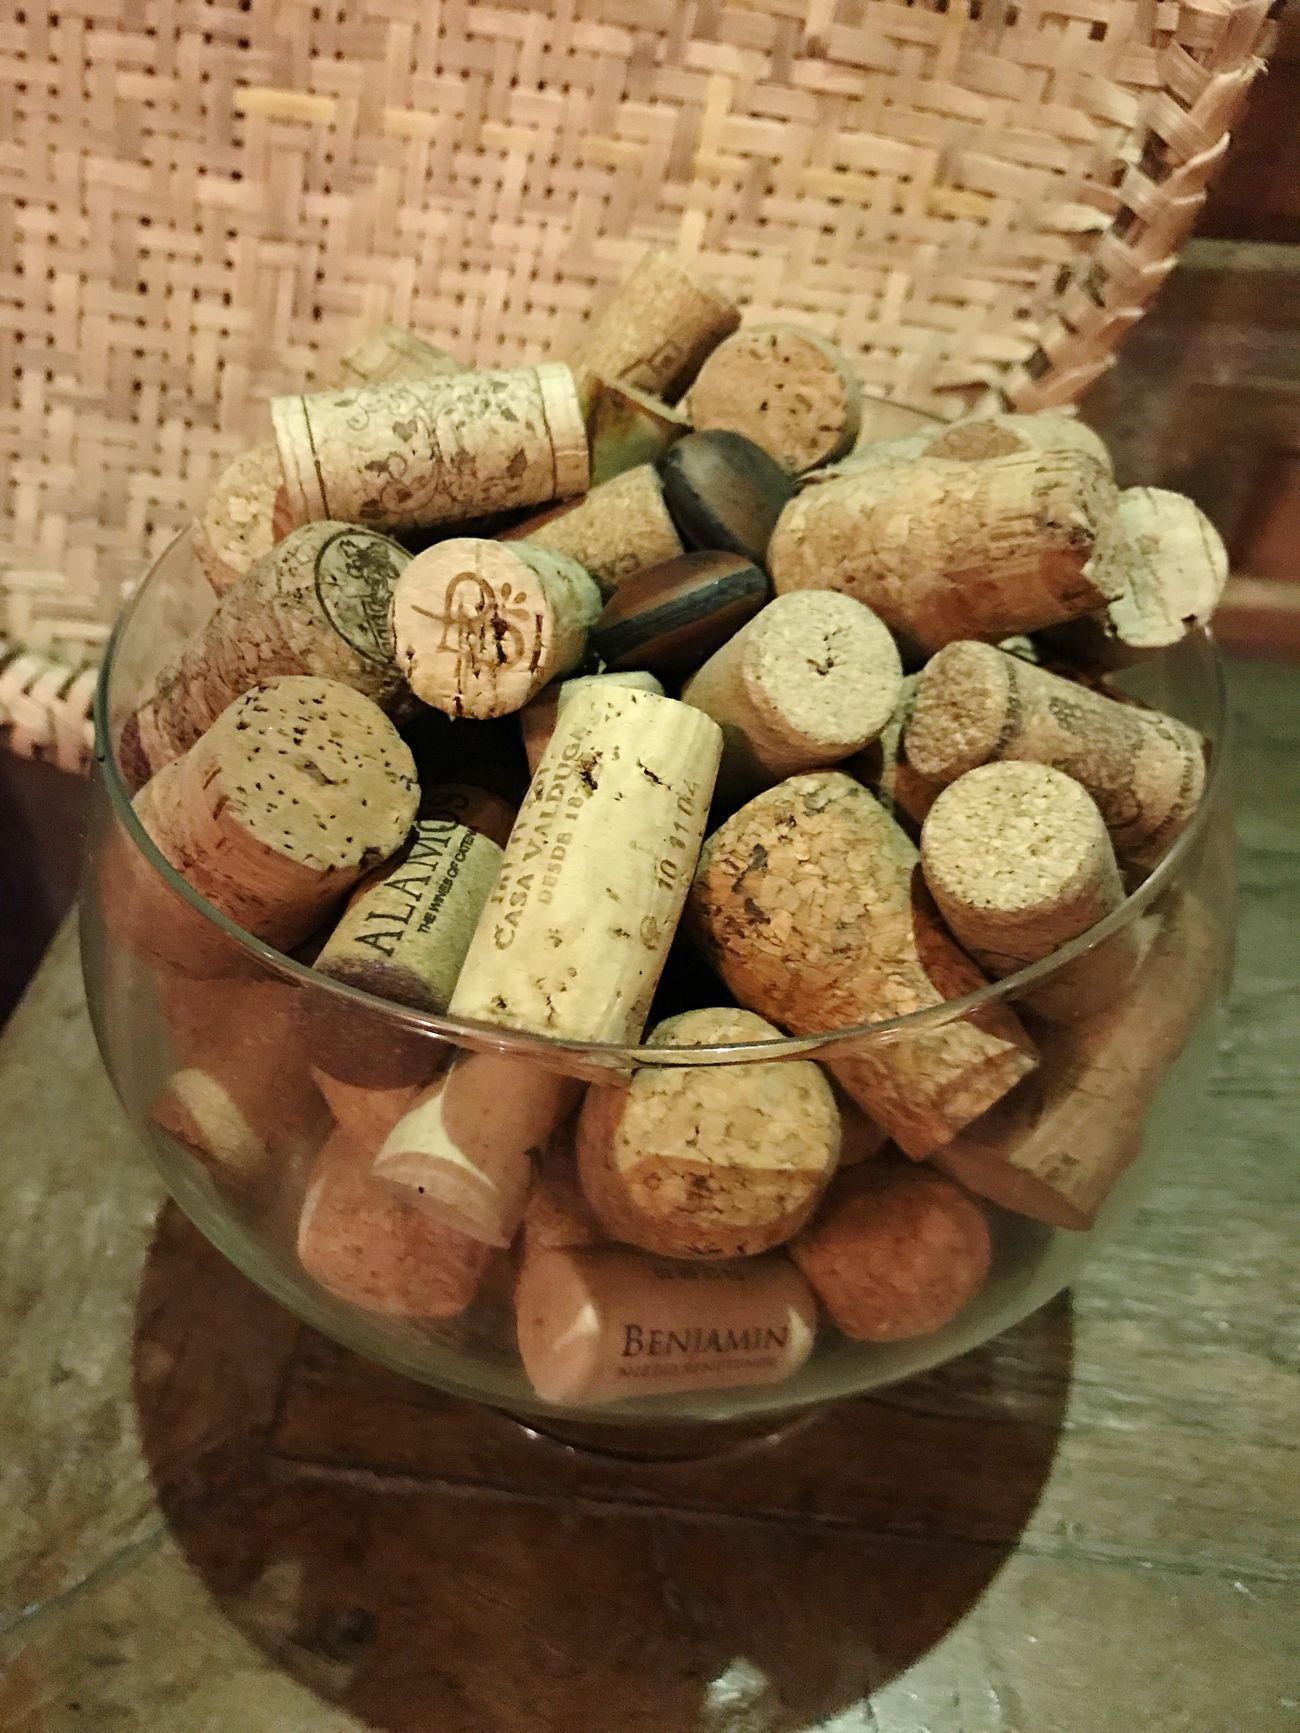 Food And Drink Wine Cork Cork - Stopper Wine Bottle Wine Bottle High Angle View Indoors  Table Drink Basket Large Group Of Objects Alcohol No People Variation Food Close-up Healthy Eating Day Freshness